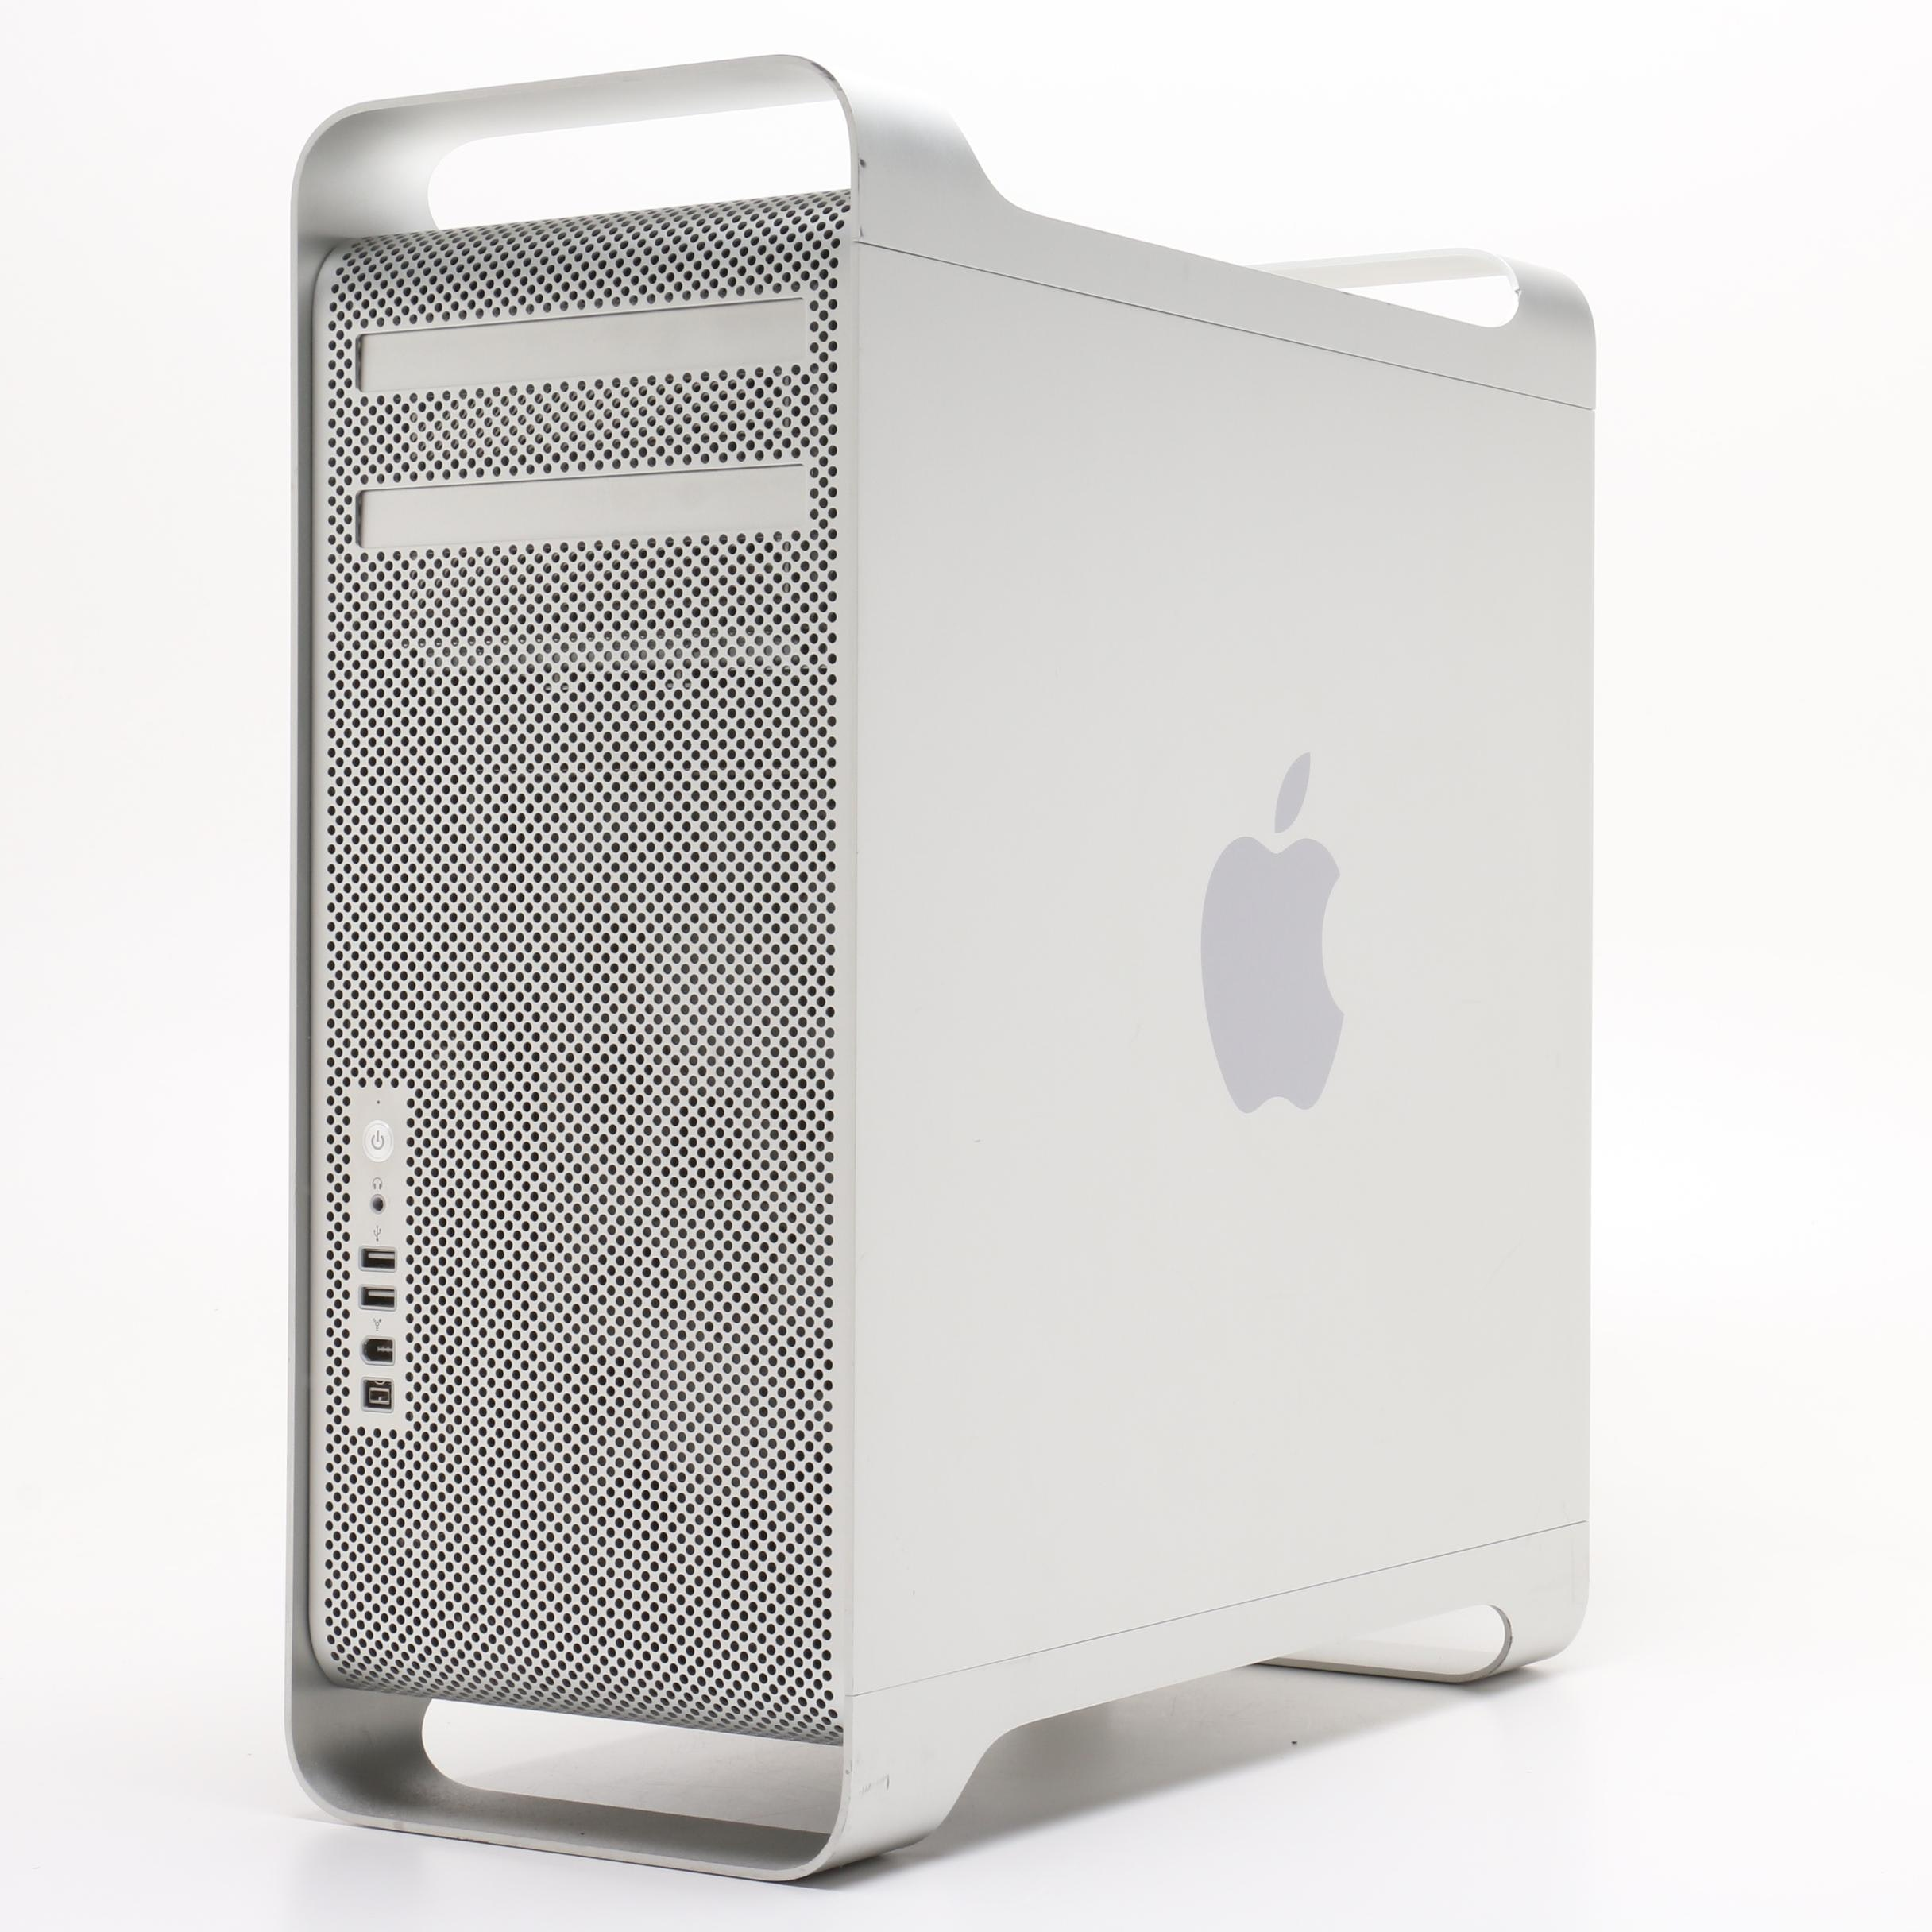 Apple Mac Pro Desktop Computer